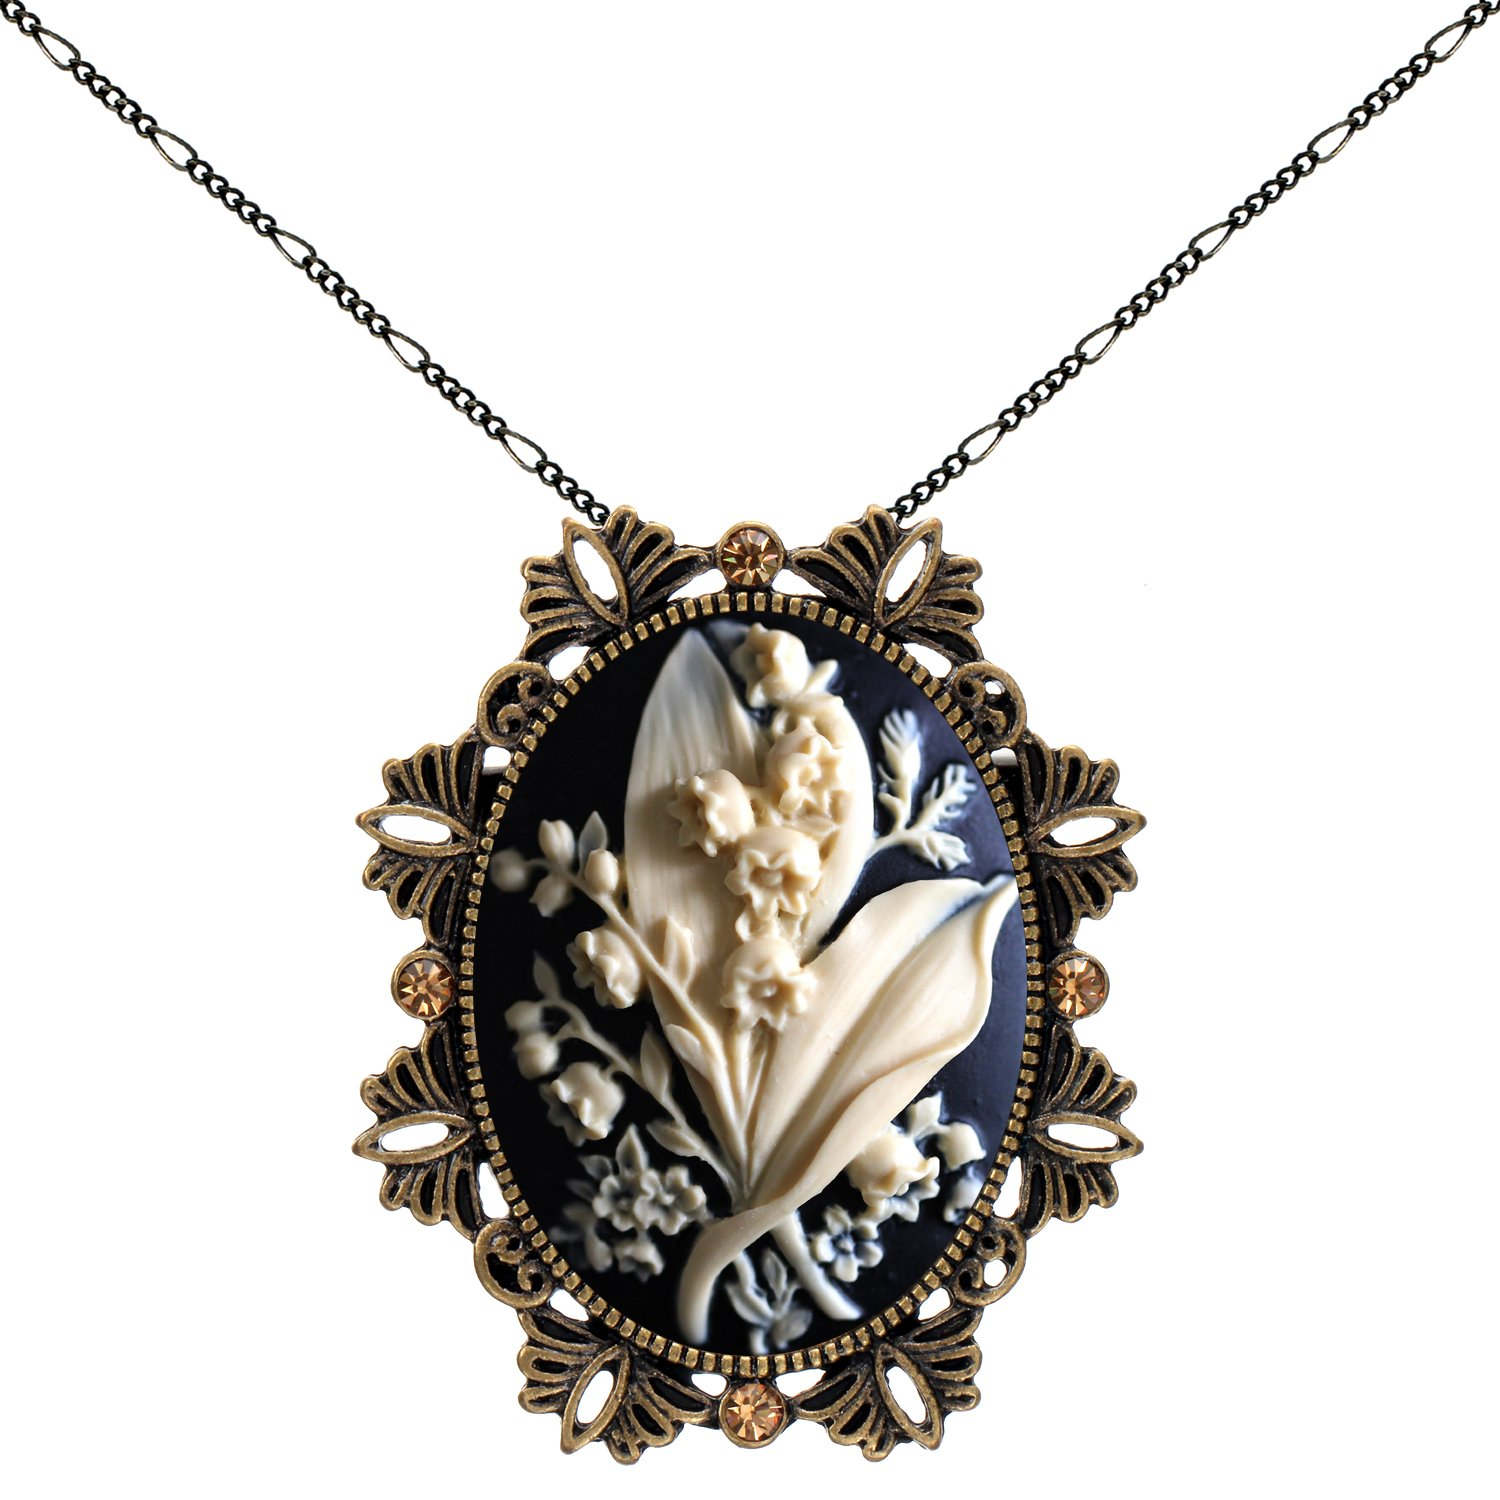 Bridal Bouquet Brooch Necklace Two Way Functional Antique Brass Pendant 18'' 24'' Chain Pouch for Gift